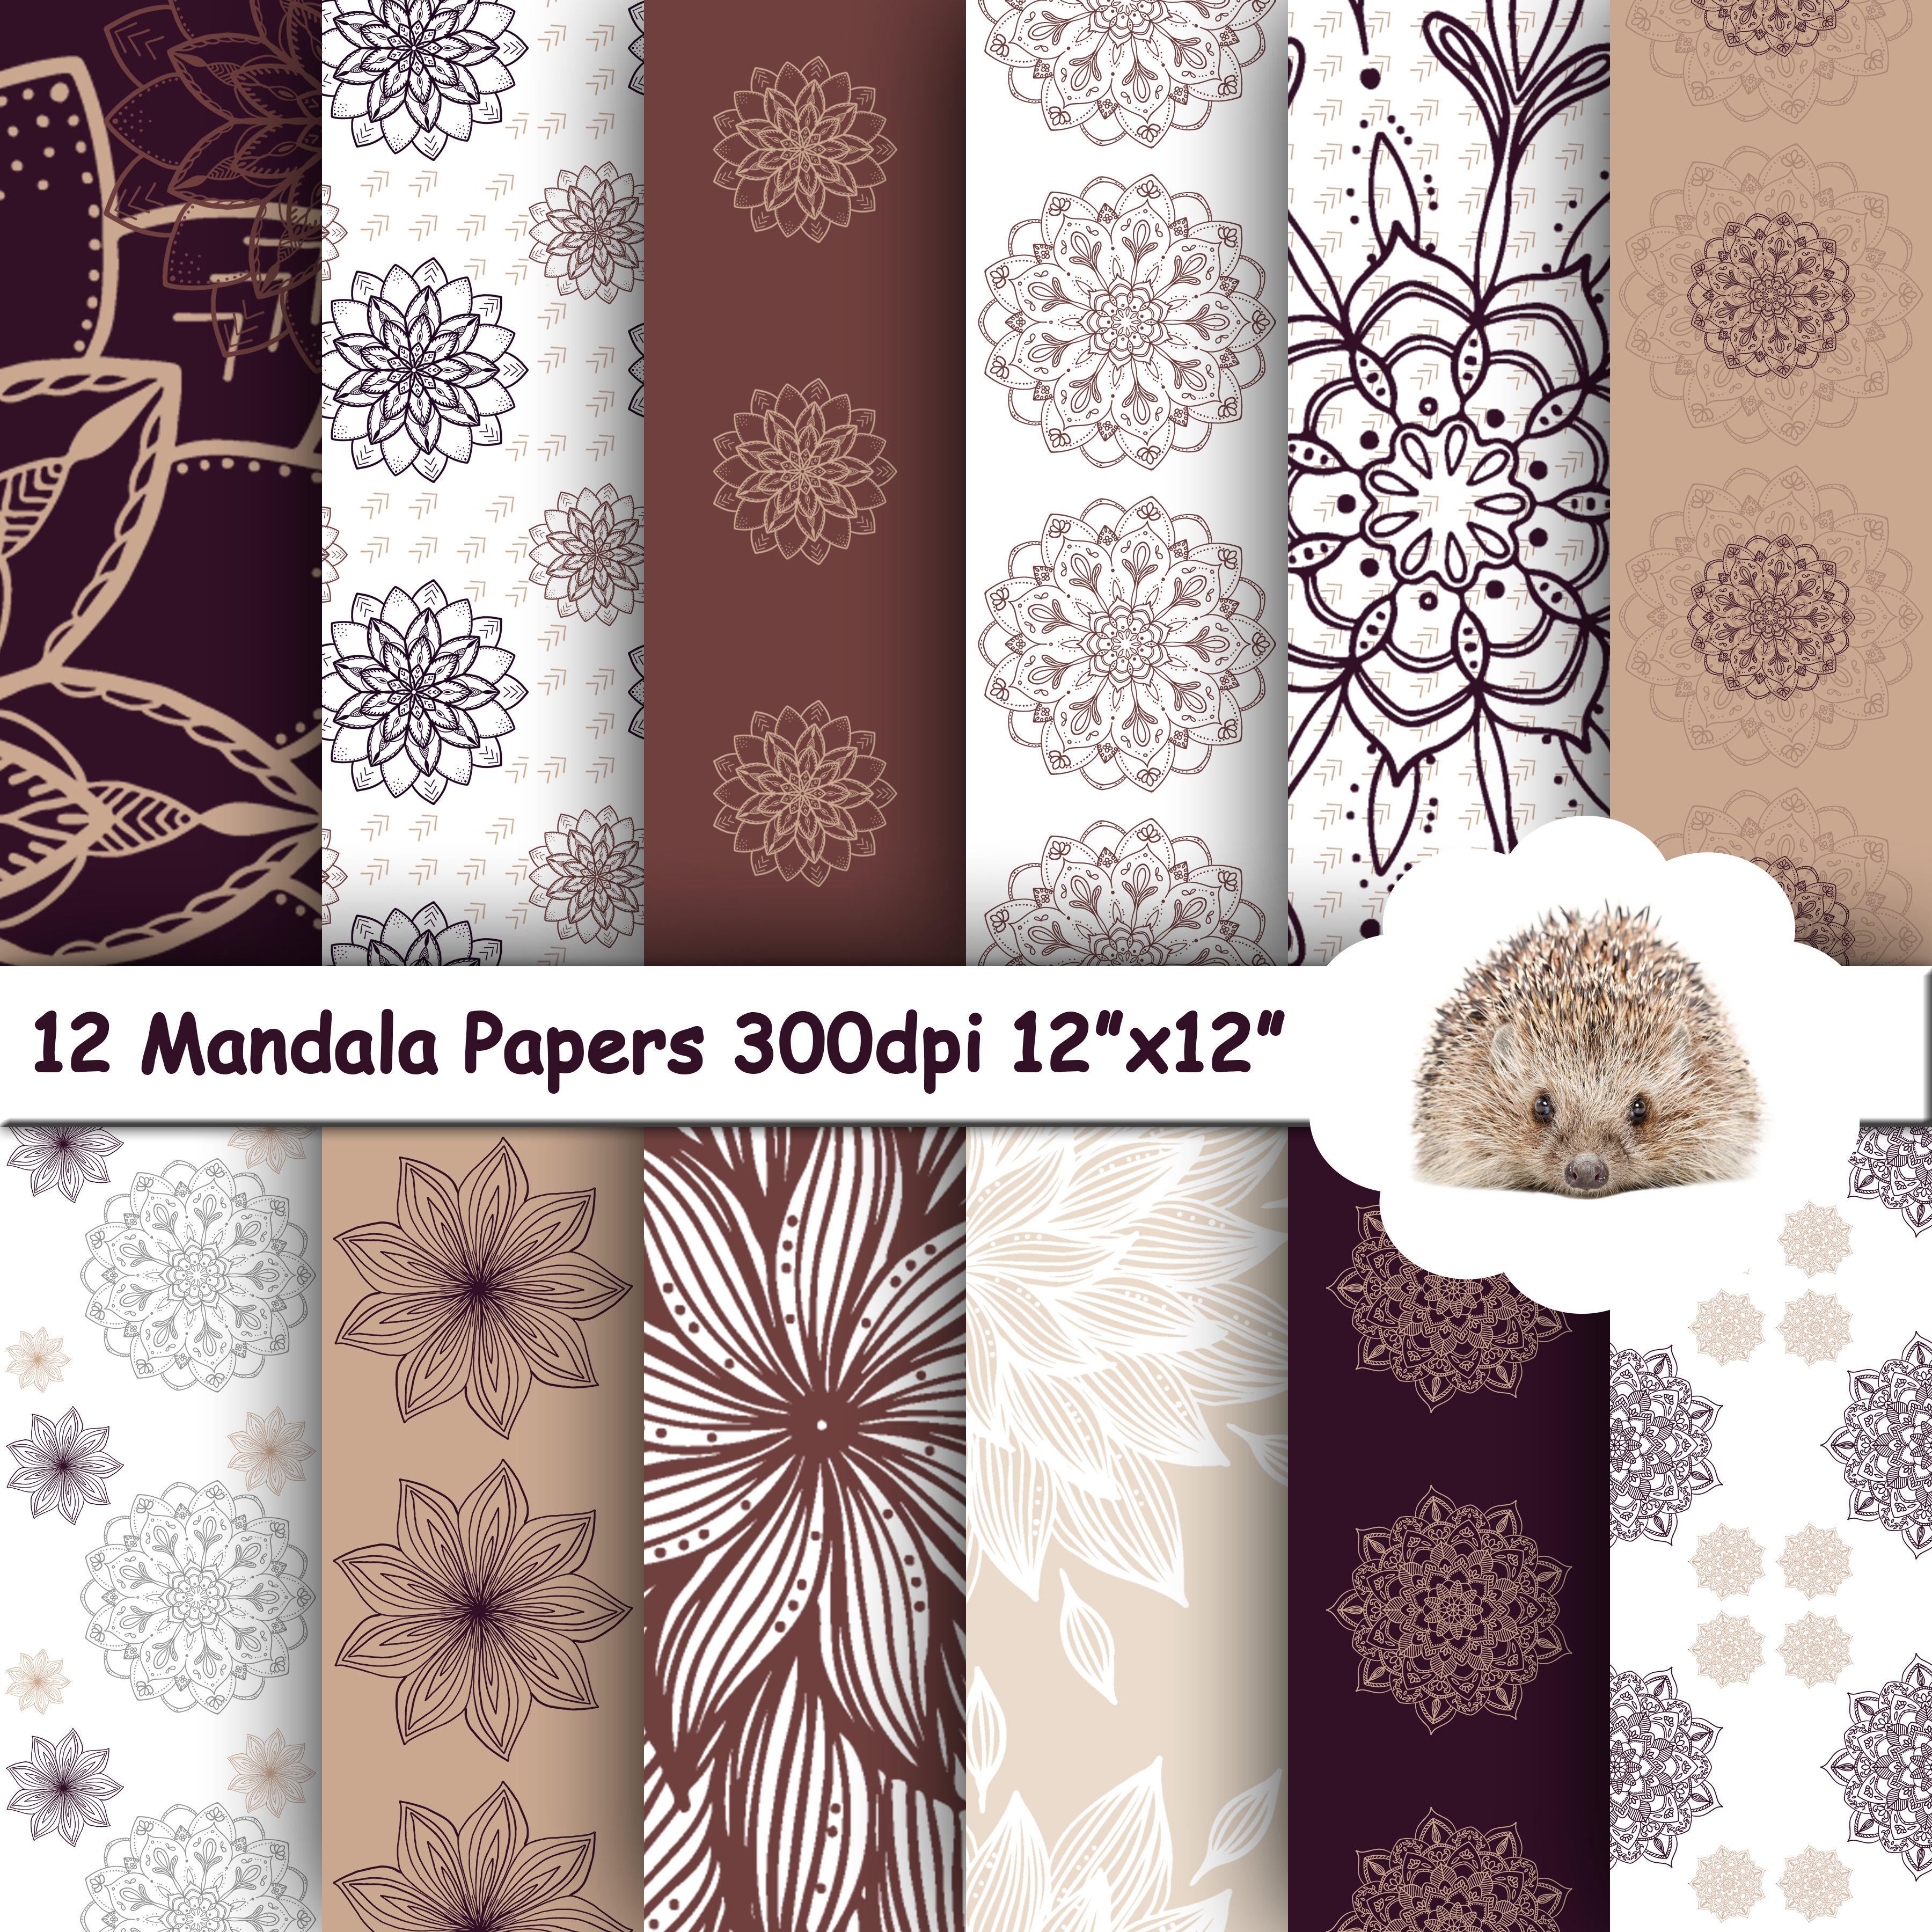 12 Panel Mockup for Digital Papers, Textures & Backgrounds example image 8